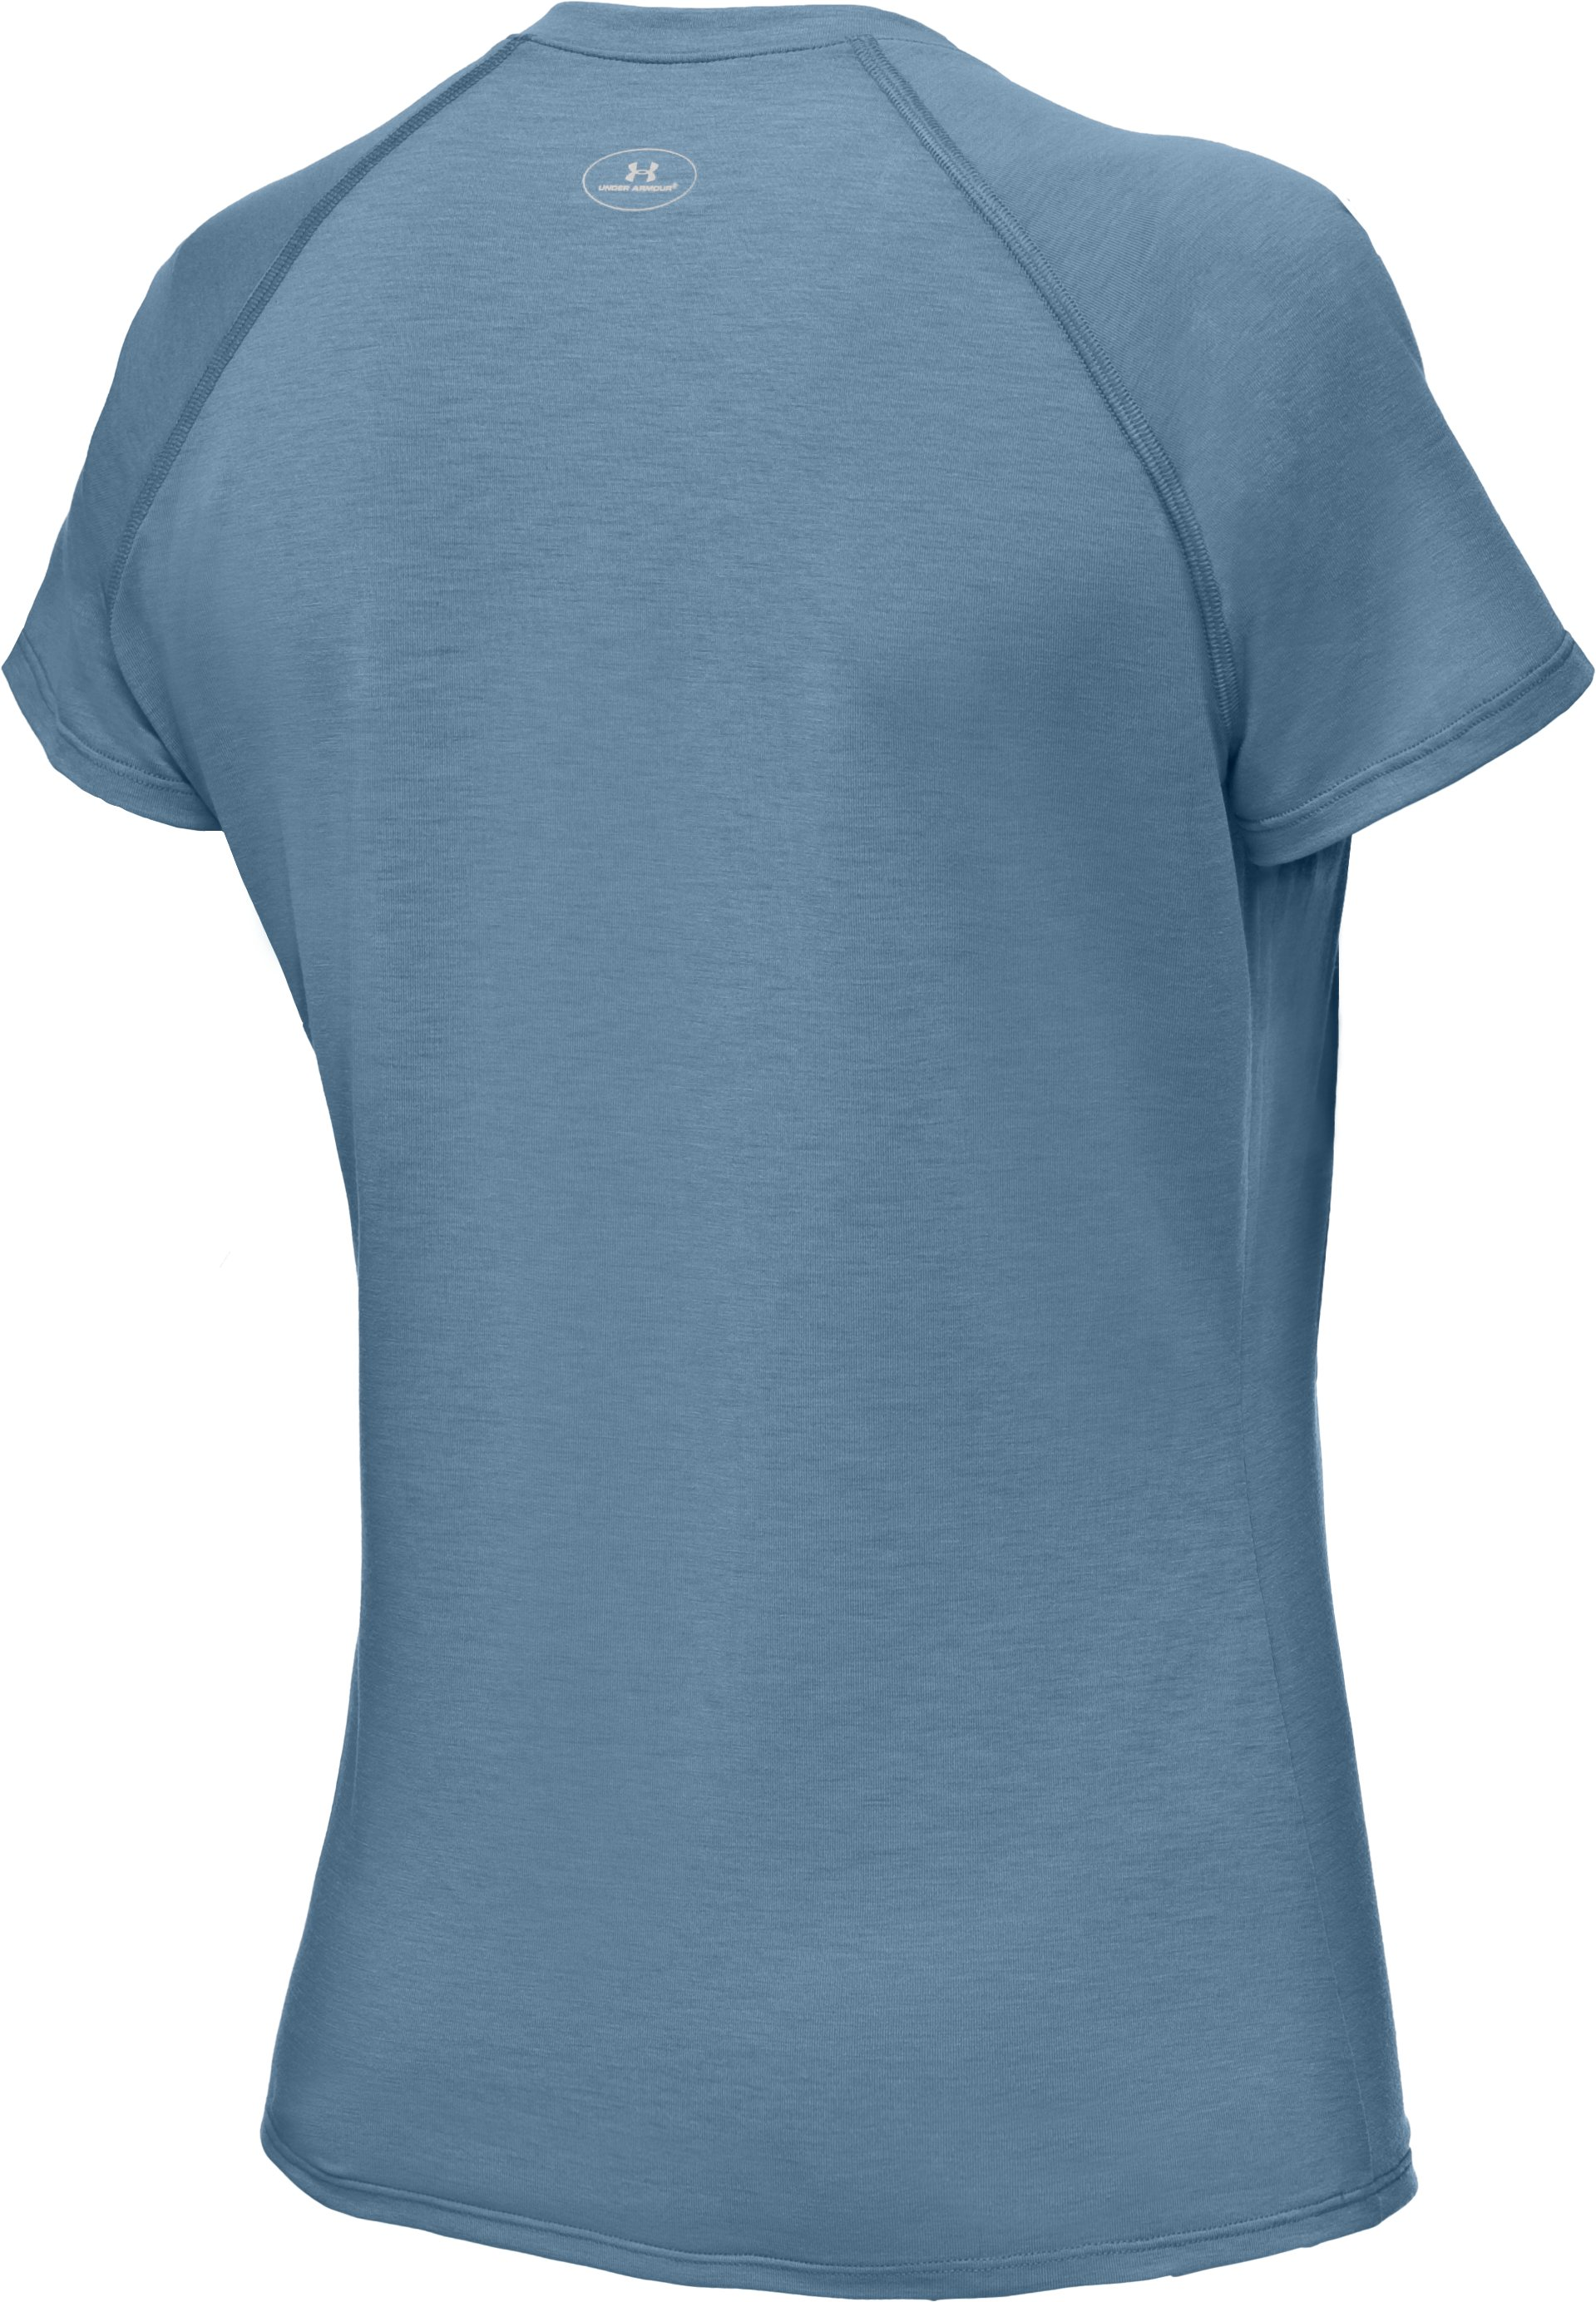 Women's UA Tech™ Short Sleeve V-Neck T-Shirt, Solder, undefined